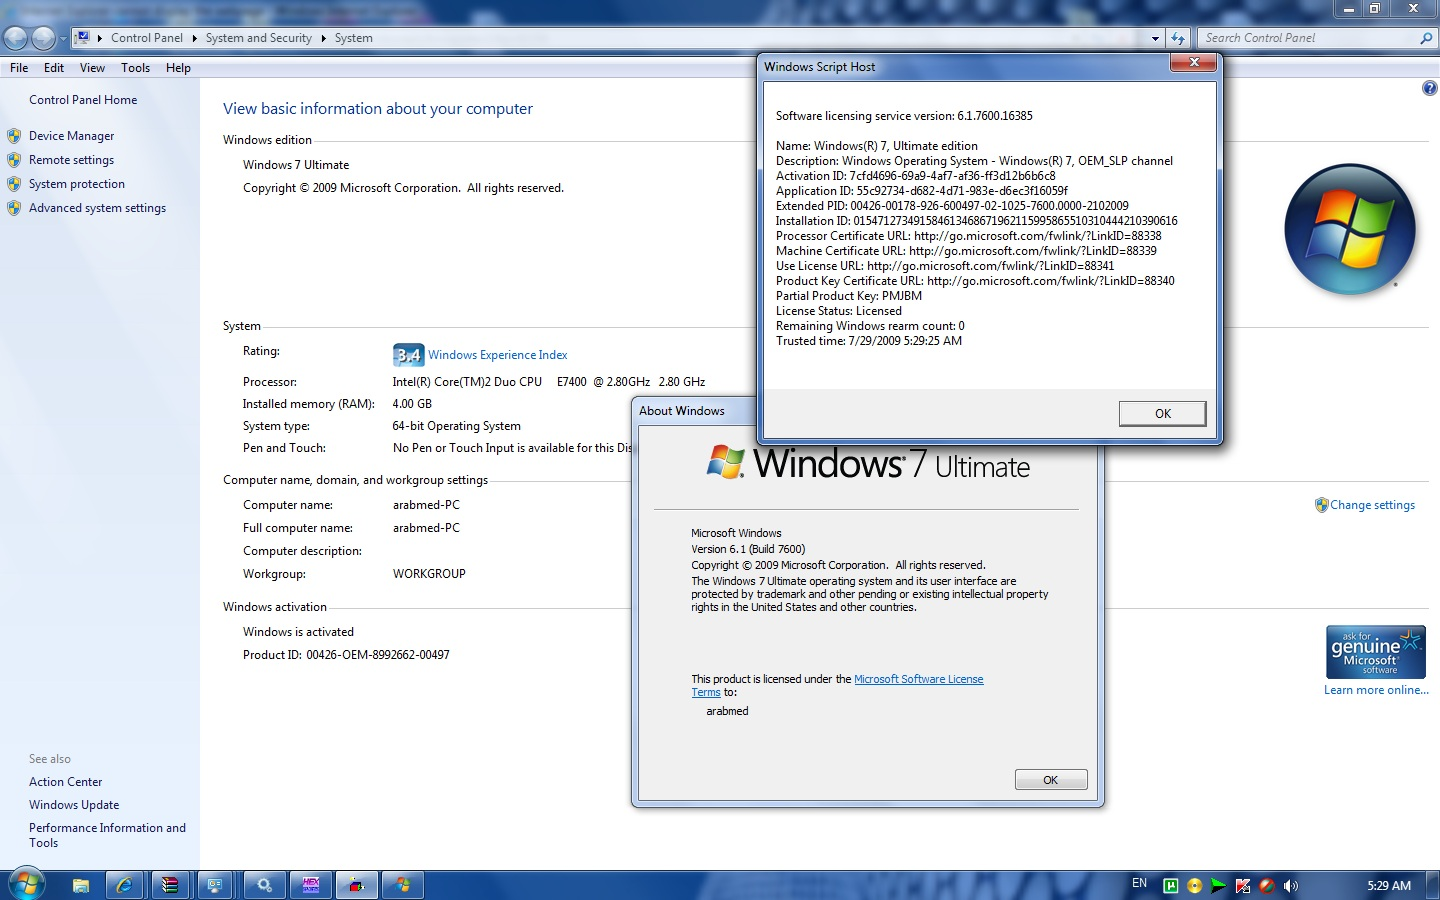 Cracked Windows 7 RTM Ultimate Activated with OEM SLP Master Product Key